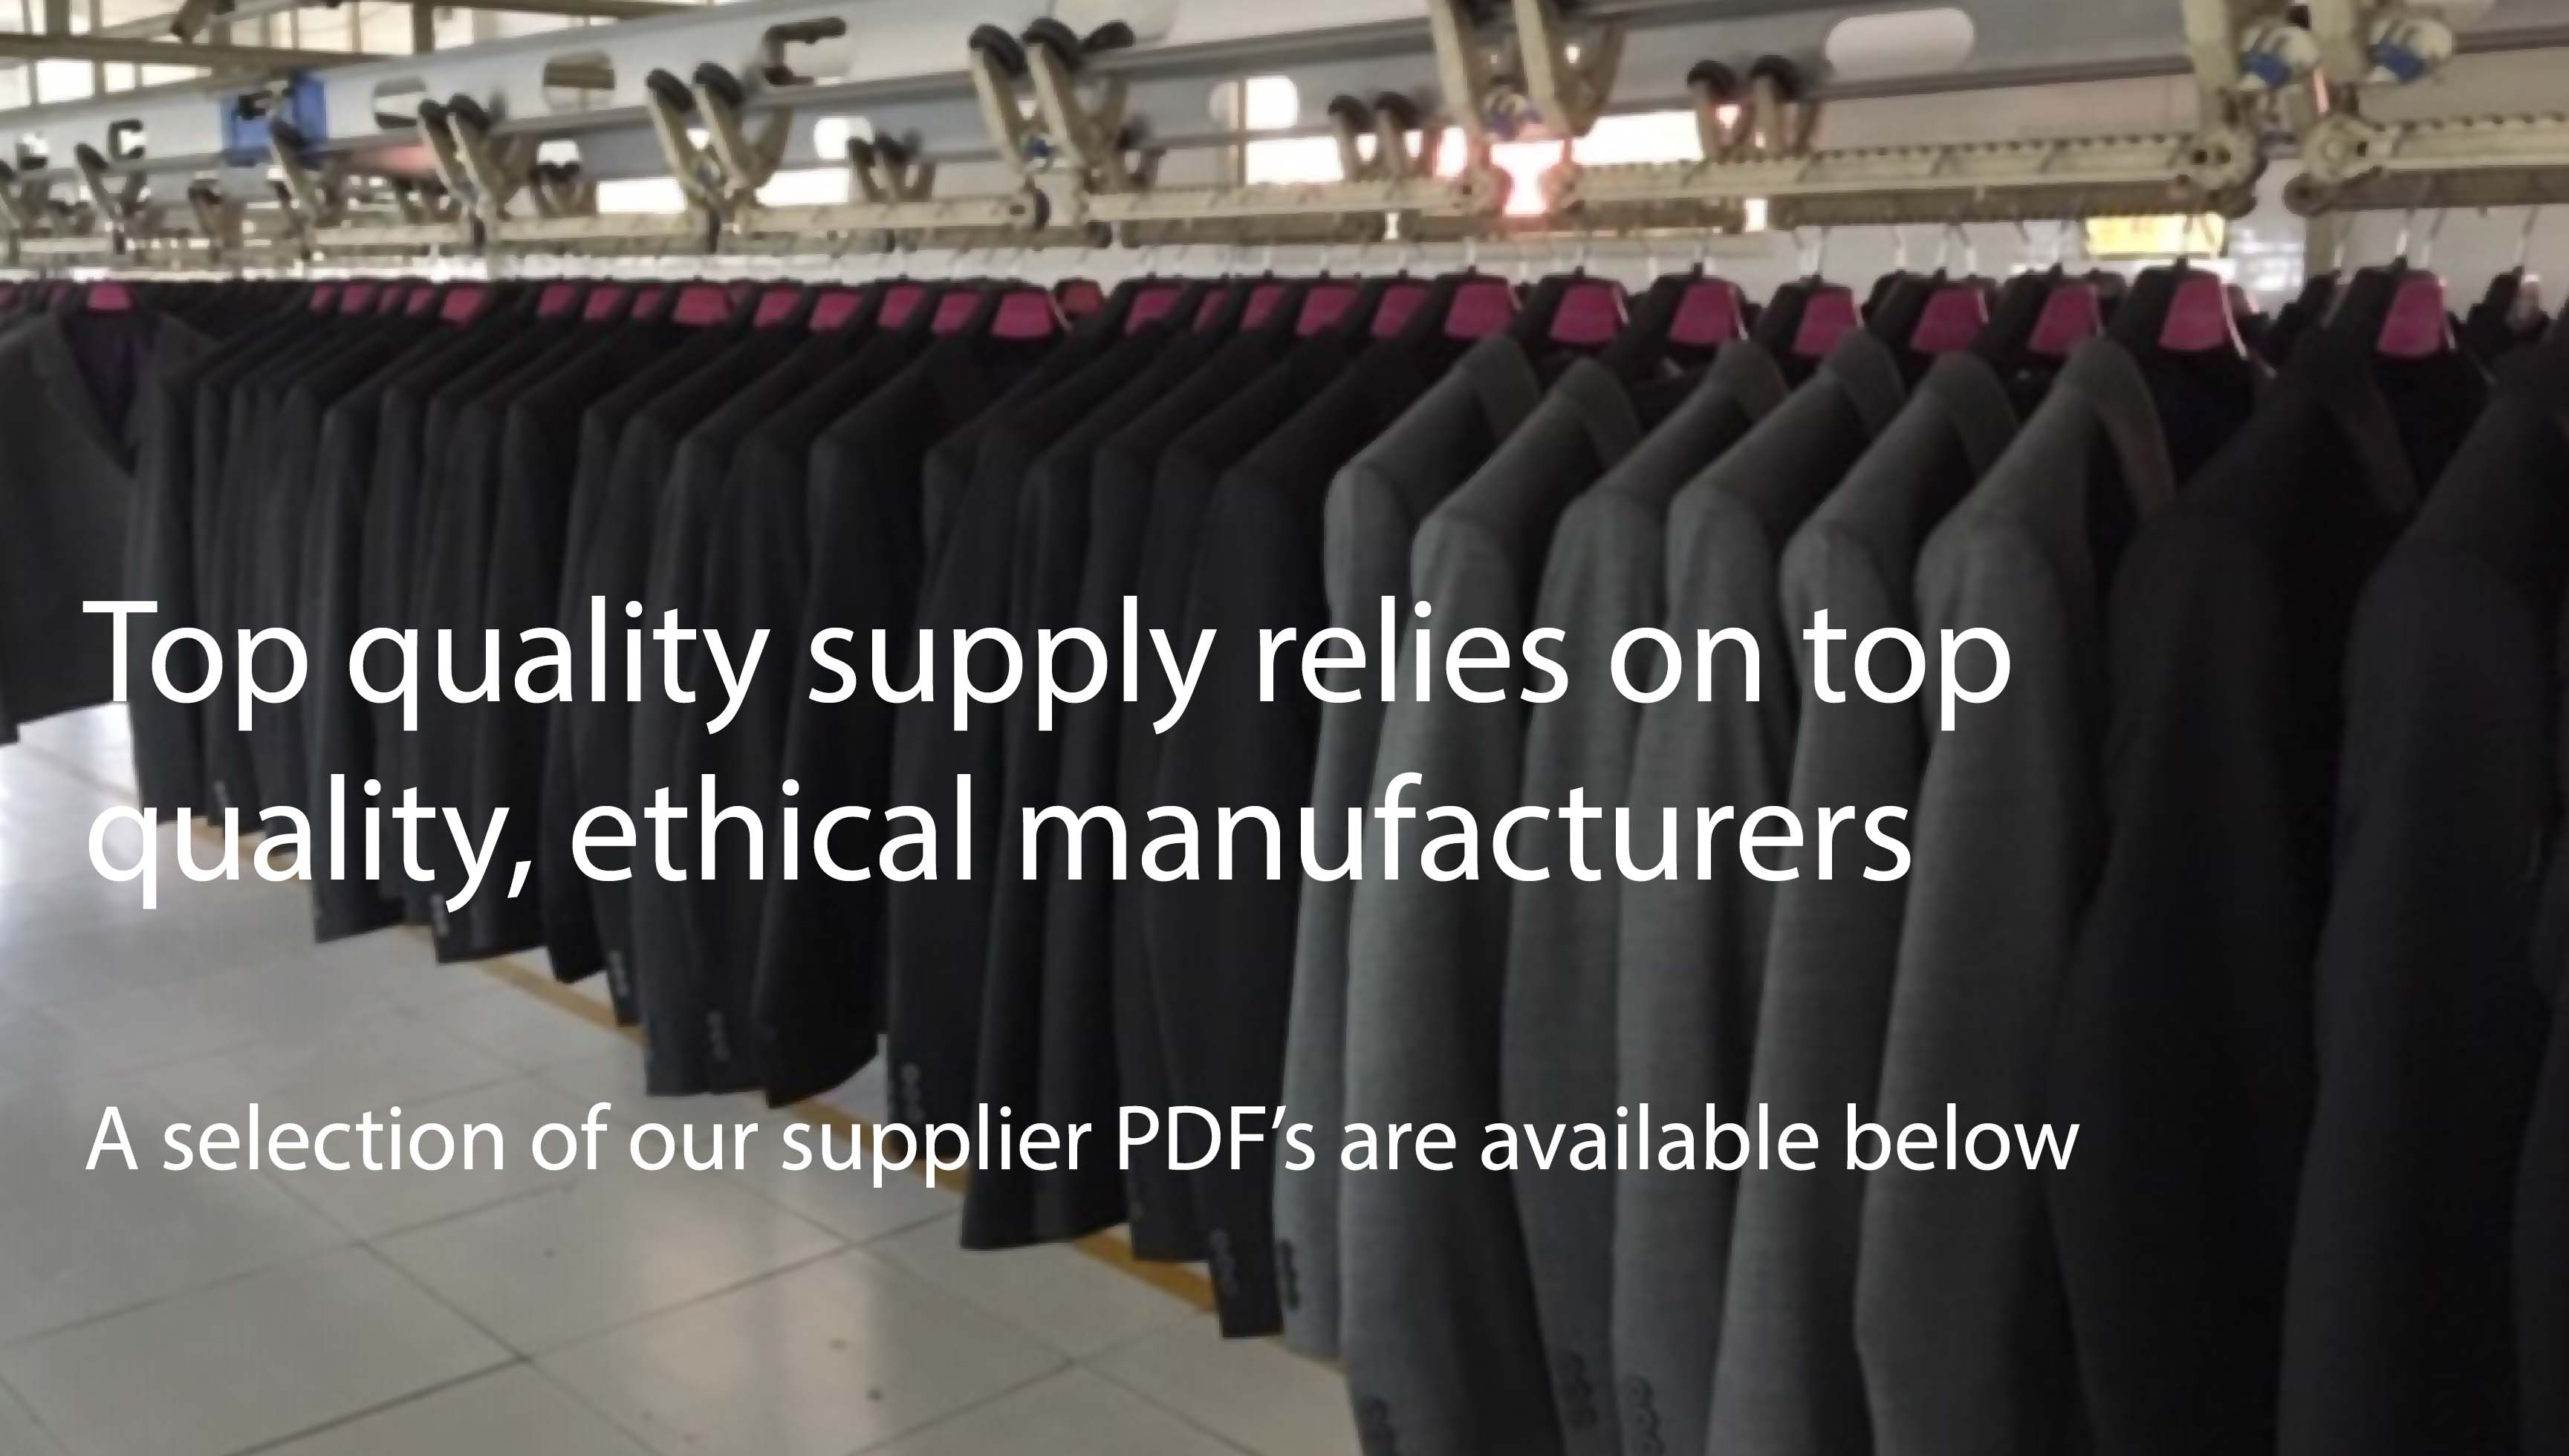 reuniform Corporate wear and uniform manufacturers UK